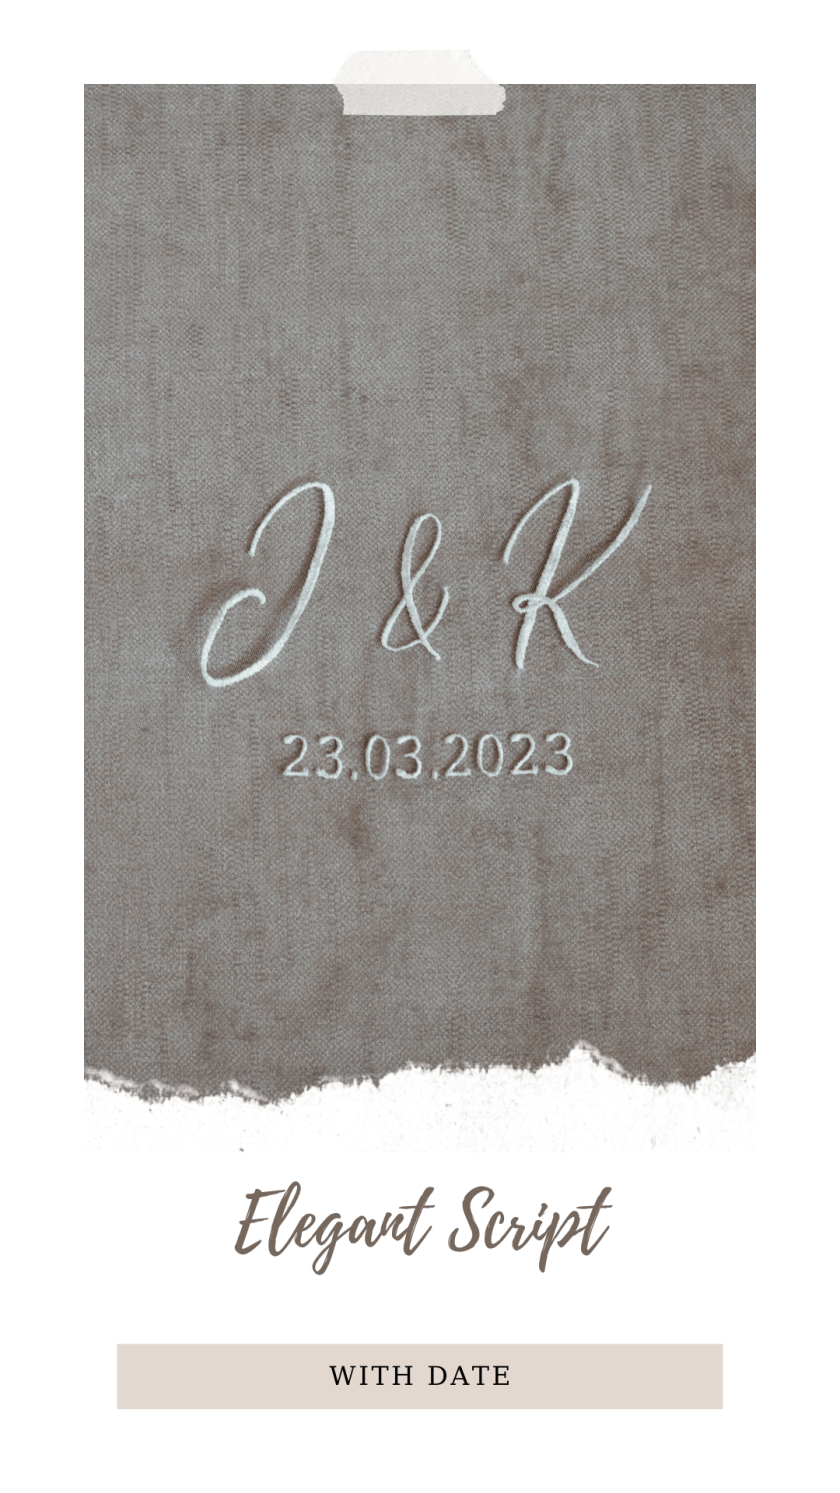 Personalised veil embroidery - monogram - elegant script font with date